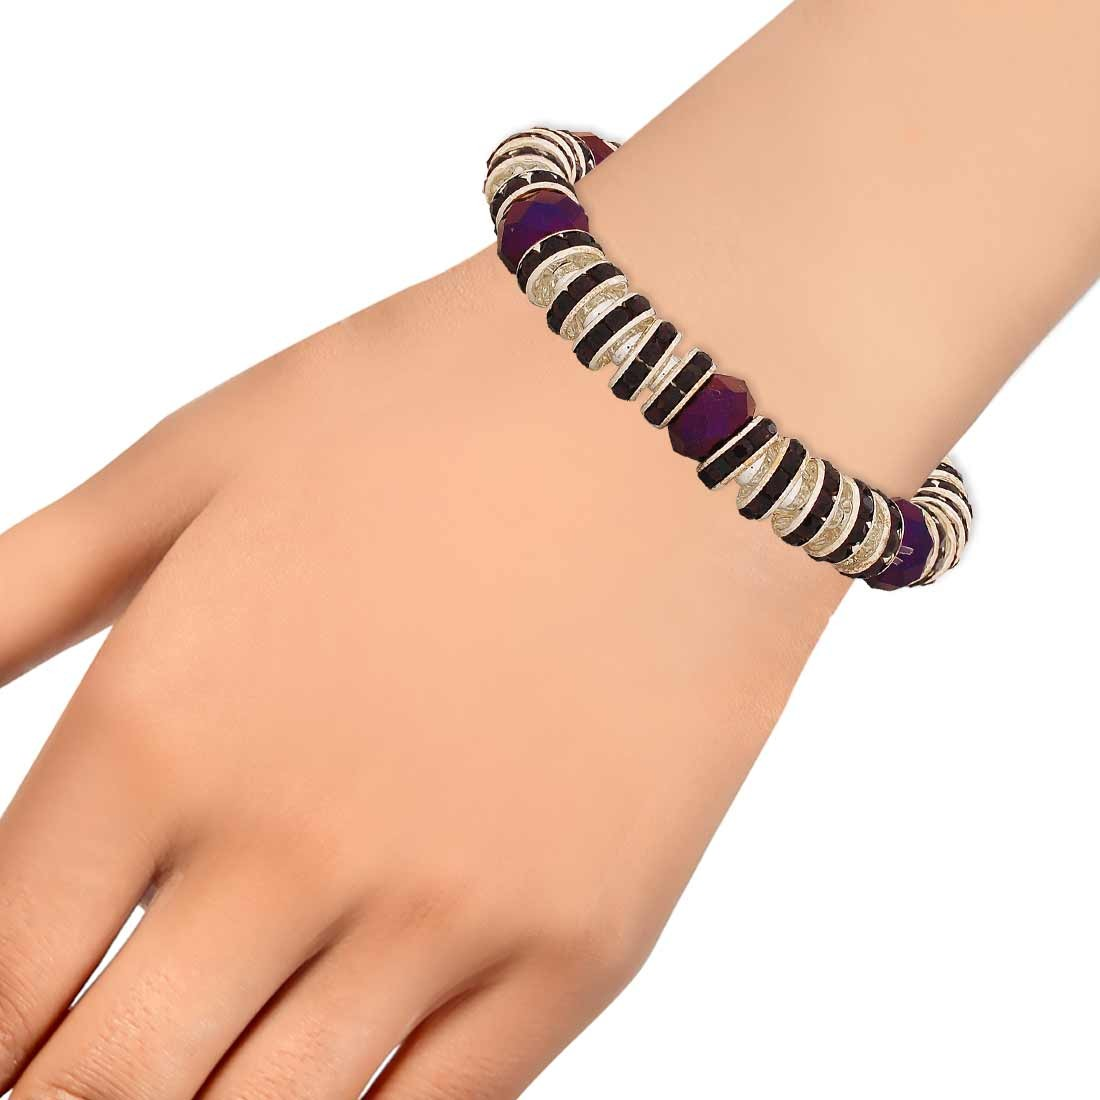 Chic Blue Contemporary Adjustable Get-together Bracelet Alloy Maayra MY7662